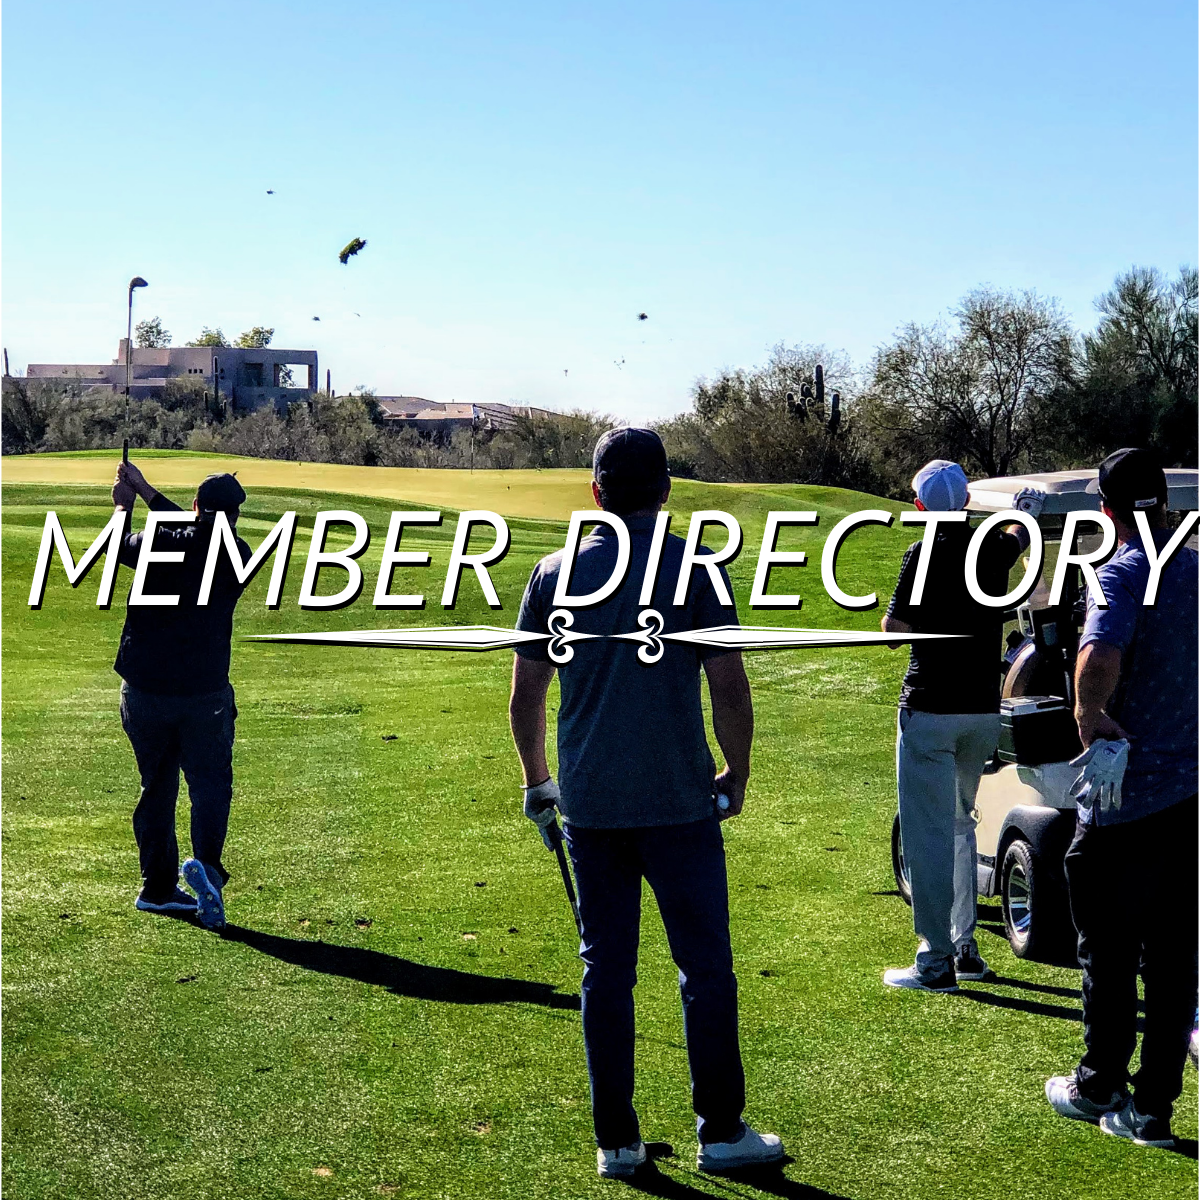 View the Golf & Grow country club member directory